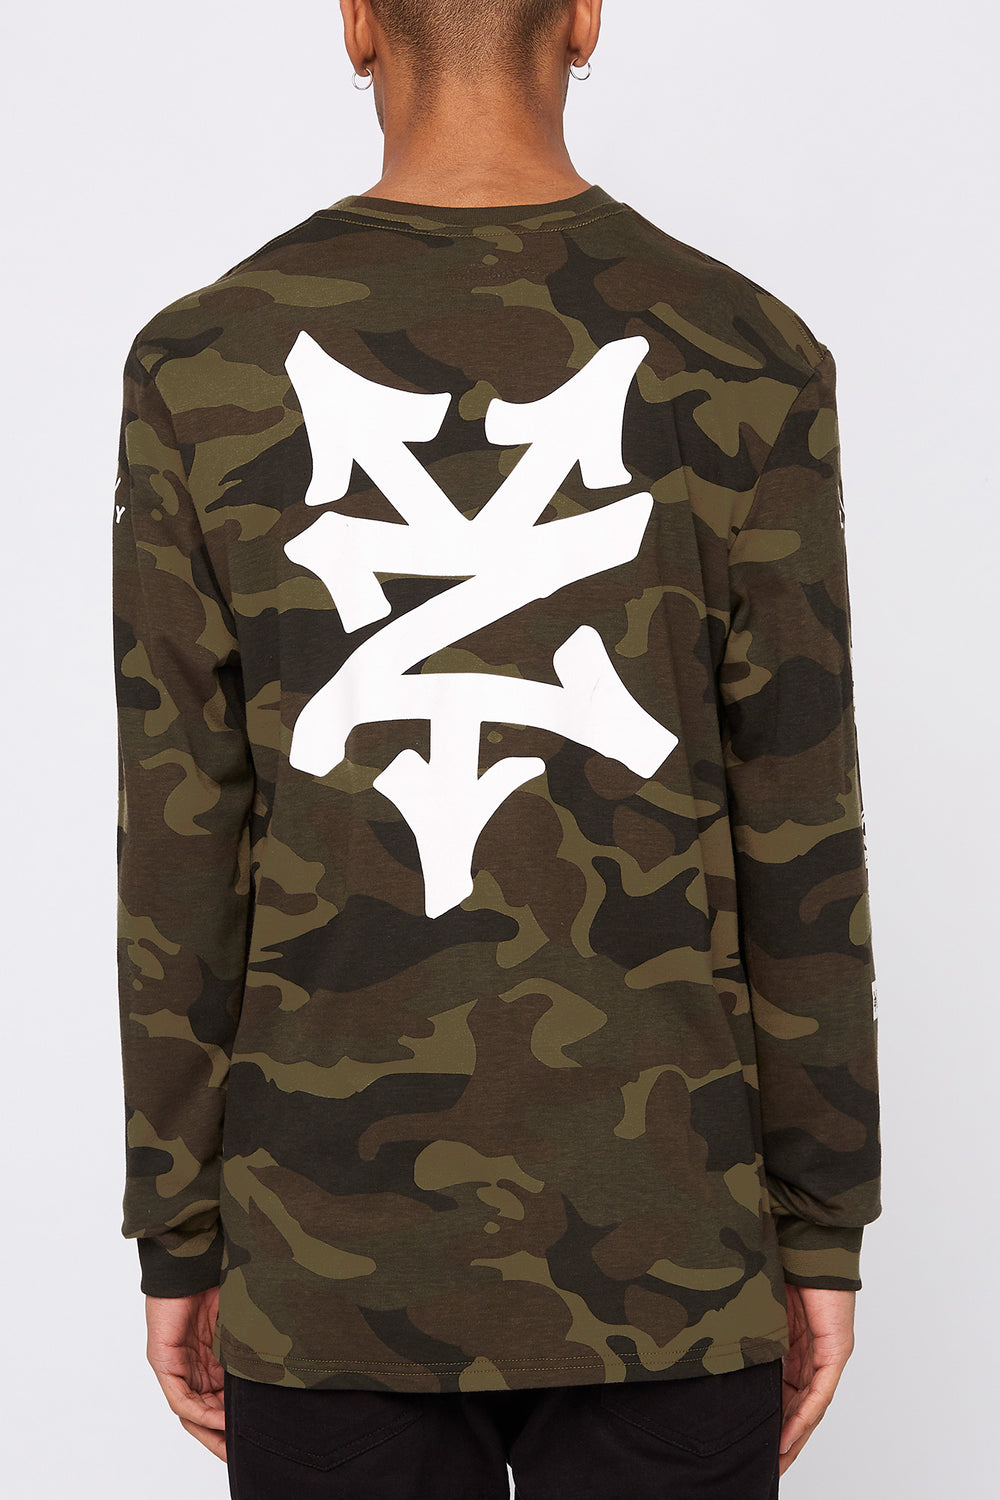 Zoo York Mens Camo Long Sleeve Shirt Camouflage